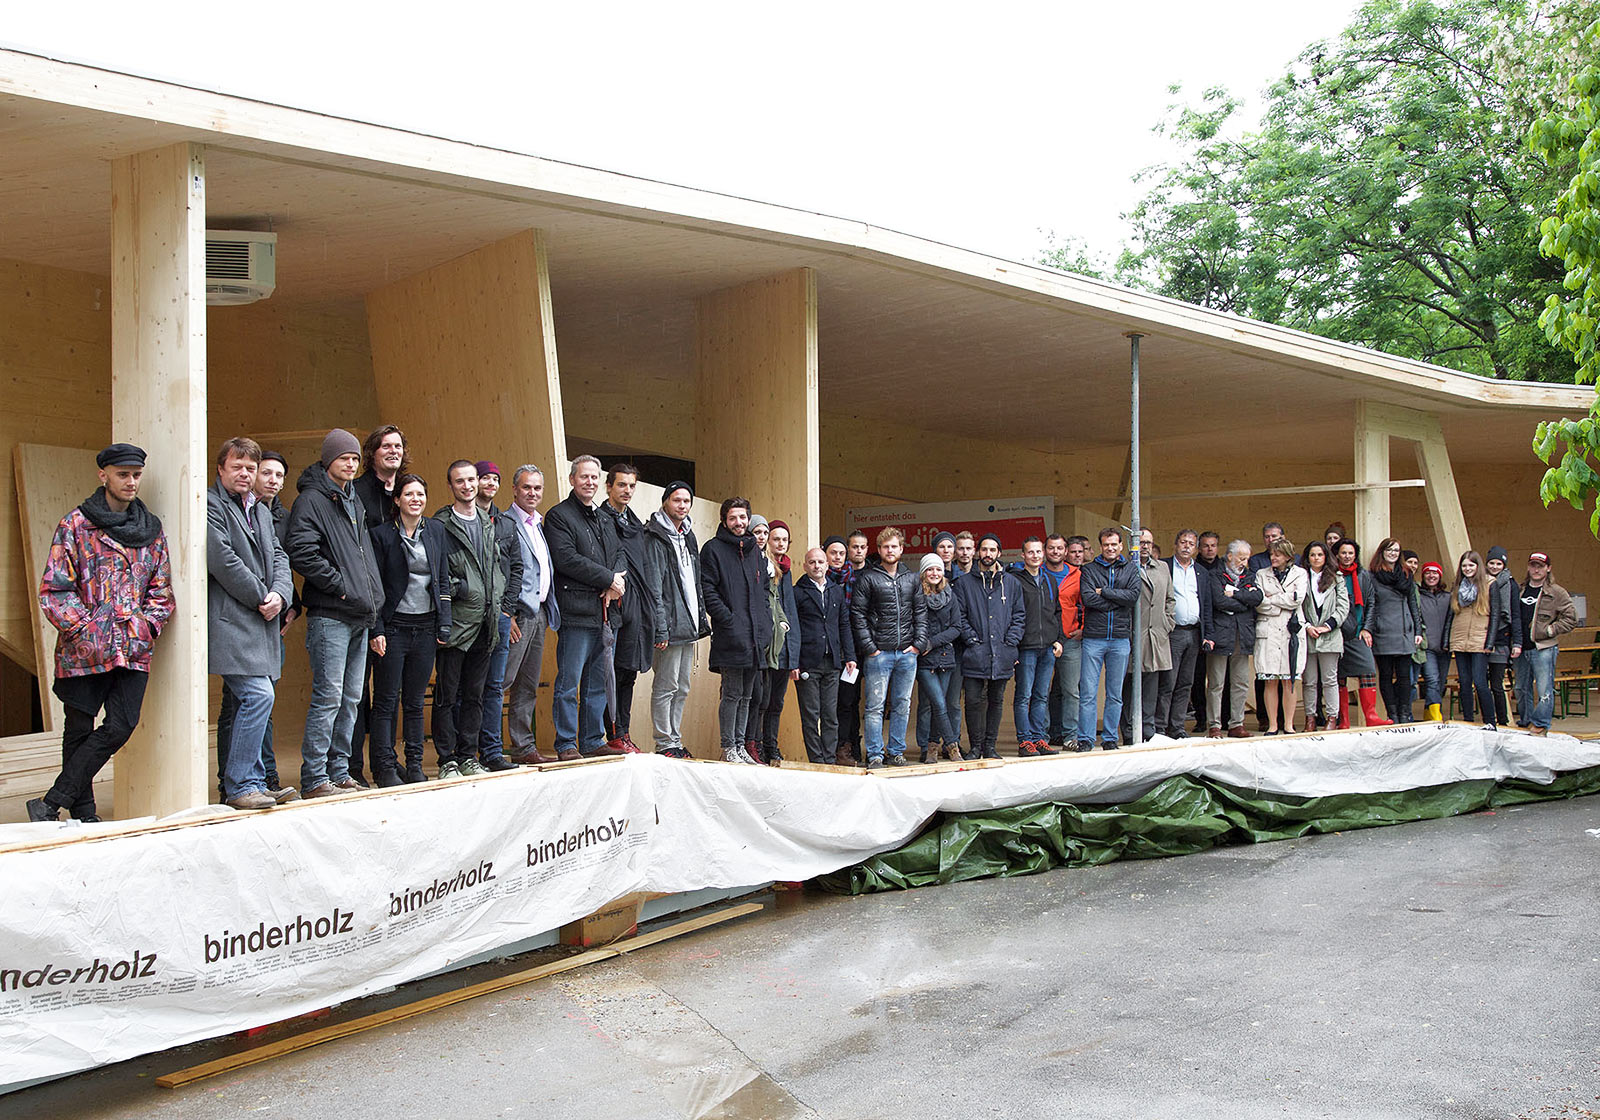 Numerous sponsors, partners and other supporters were invited to the topping-out ceremony. Photo: bilding/G.R. Wett